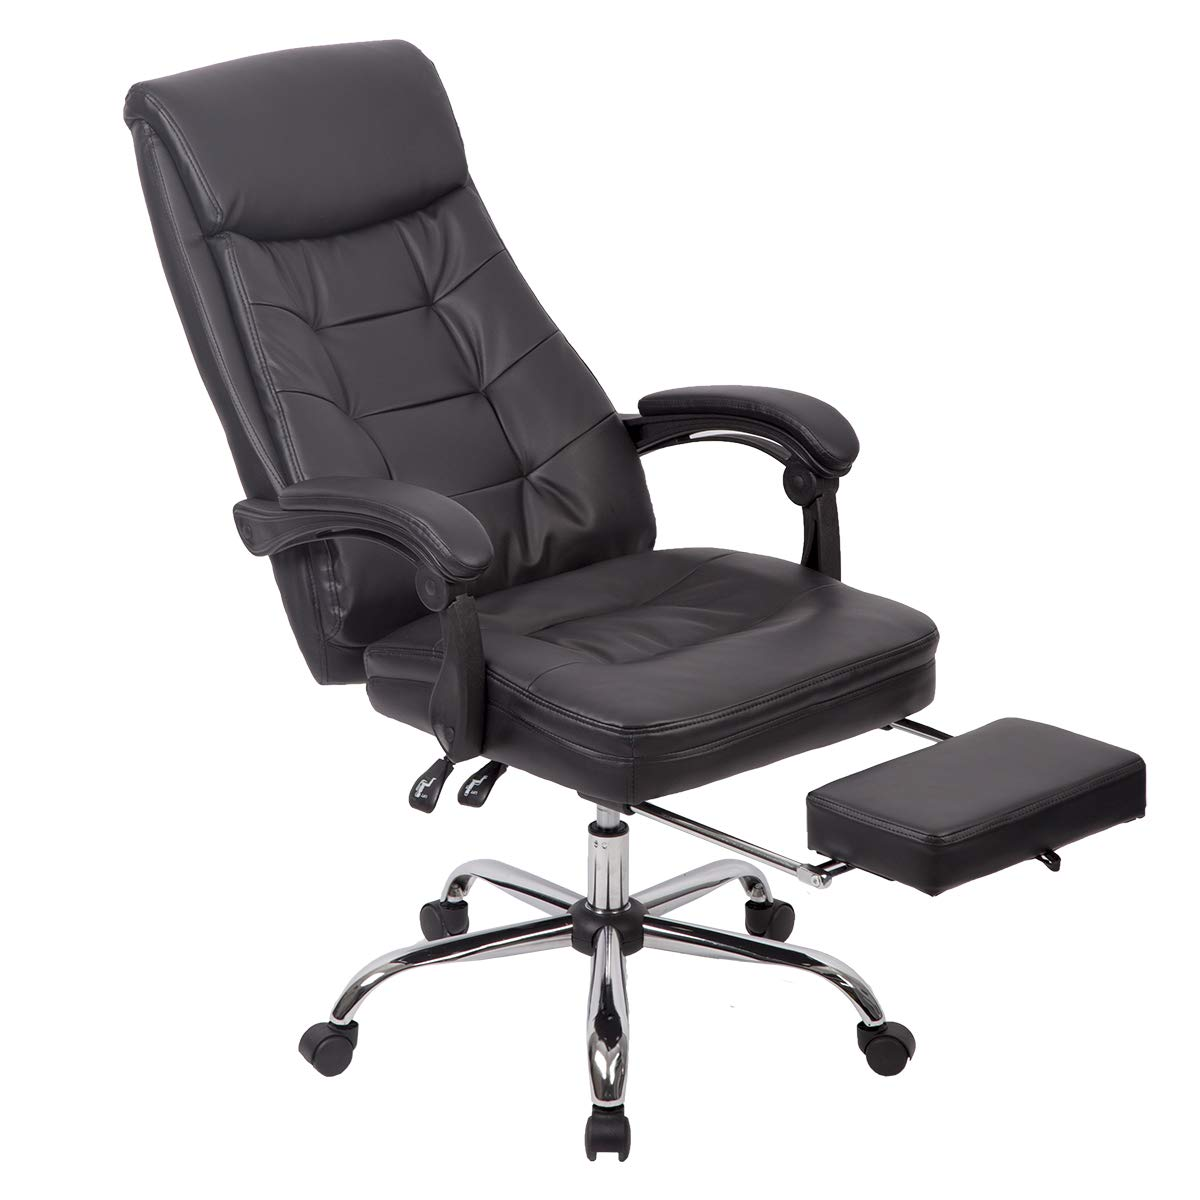 Charmant Amazon.com: Recliner Office Chair PU High Back Executive Task Desk Racing  Chair: Kitchen U0026 Dining